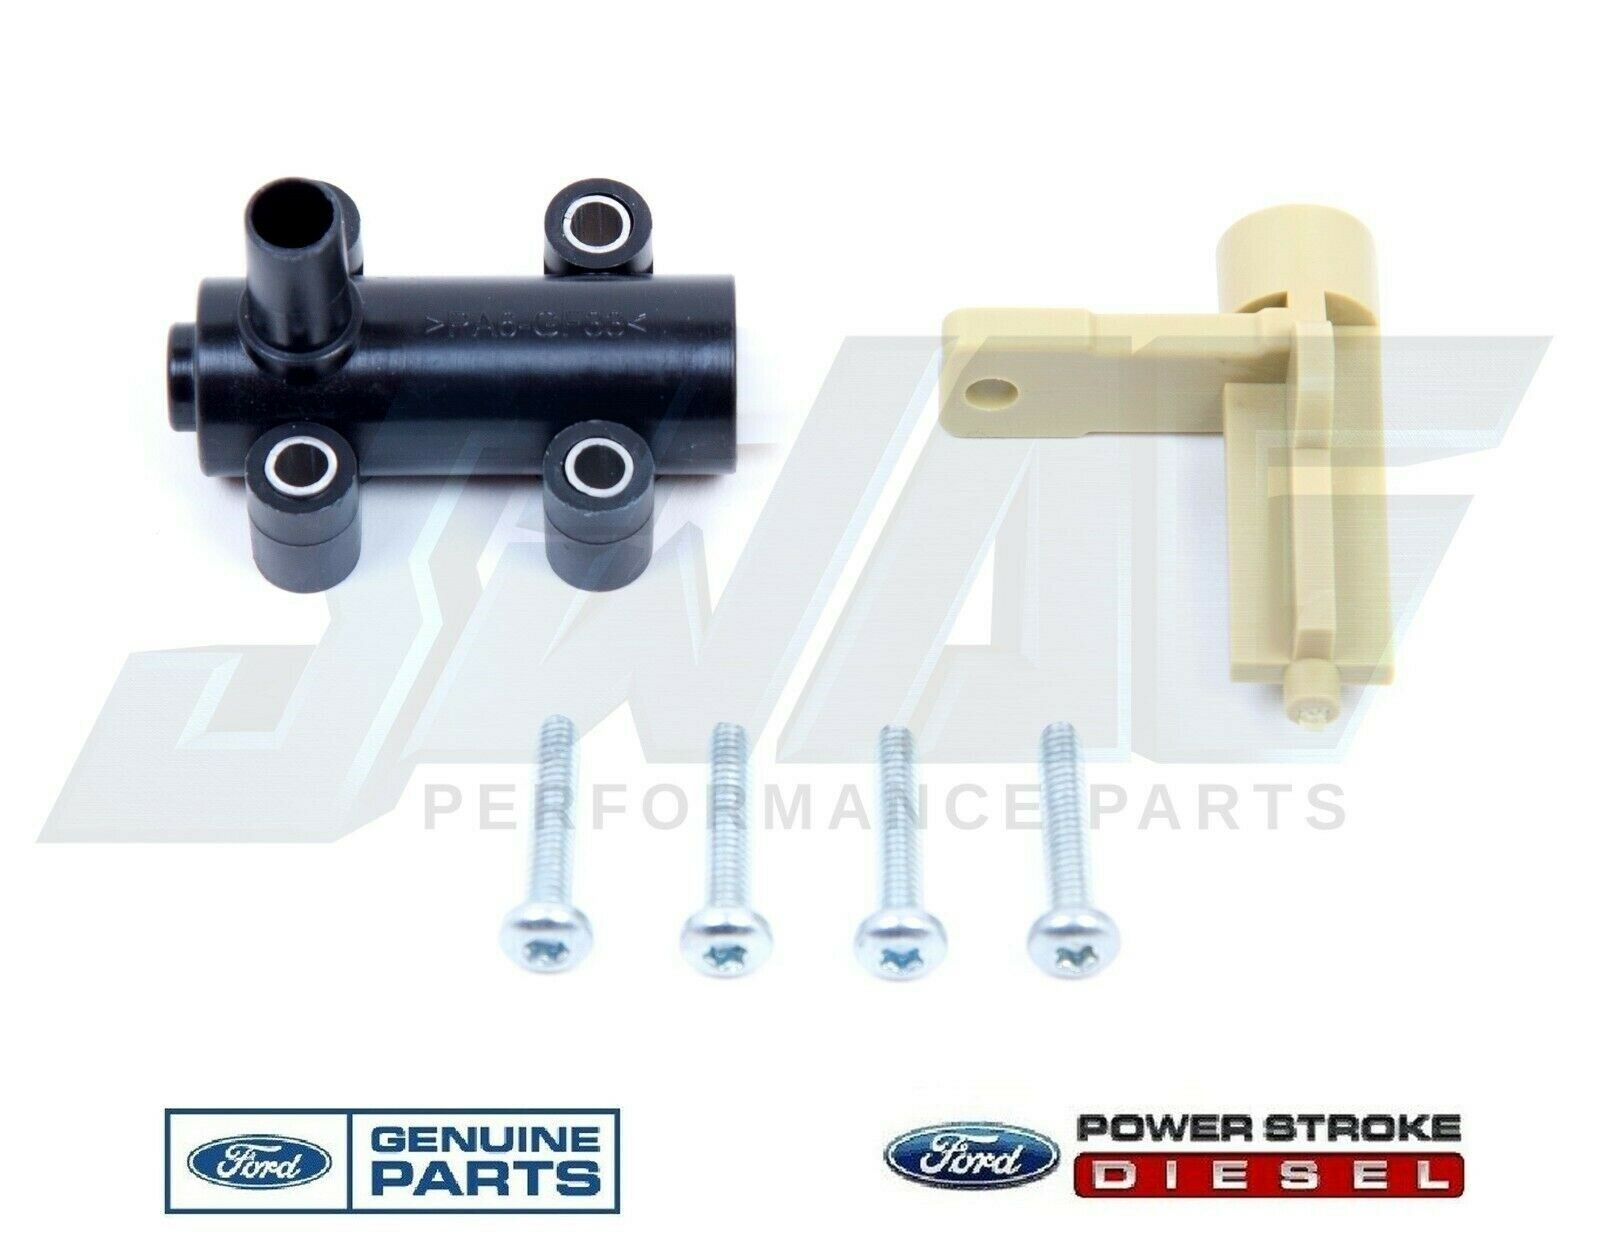 99 03 Genuine Ford 73l Powerstroke Diesel Oem Fuel Water Separator F450 Filter Housing 1 Of 1only 2 Available